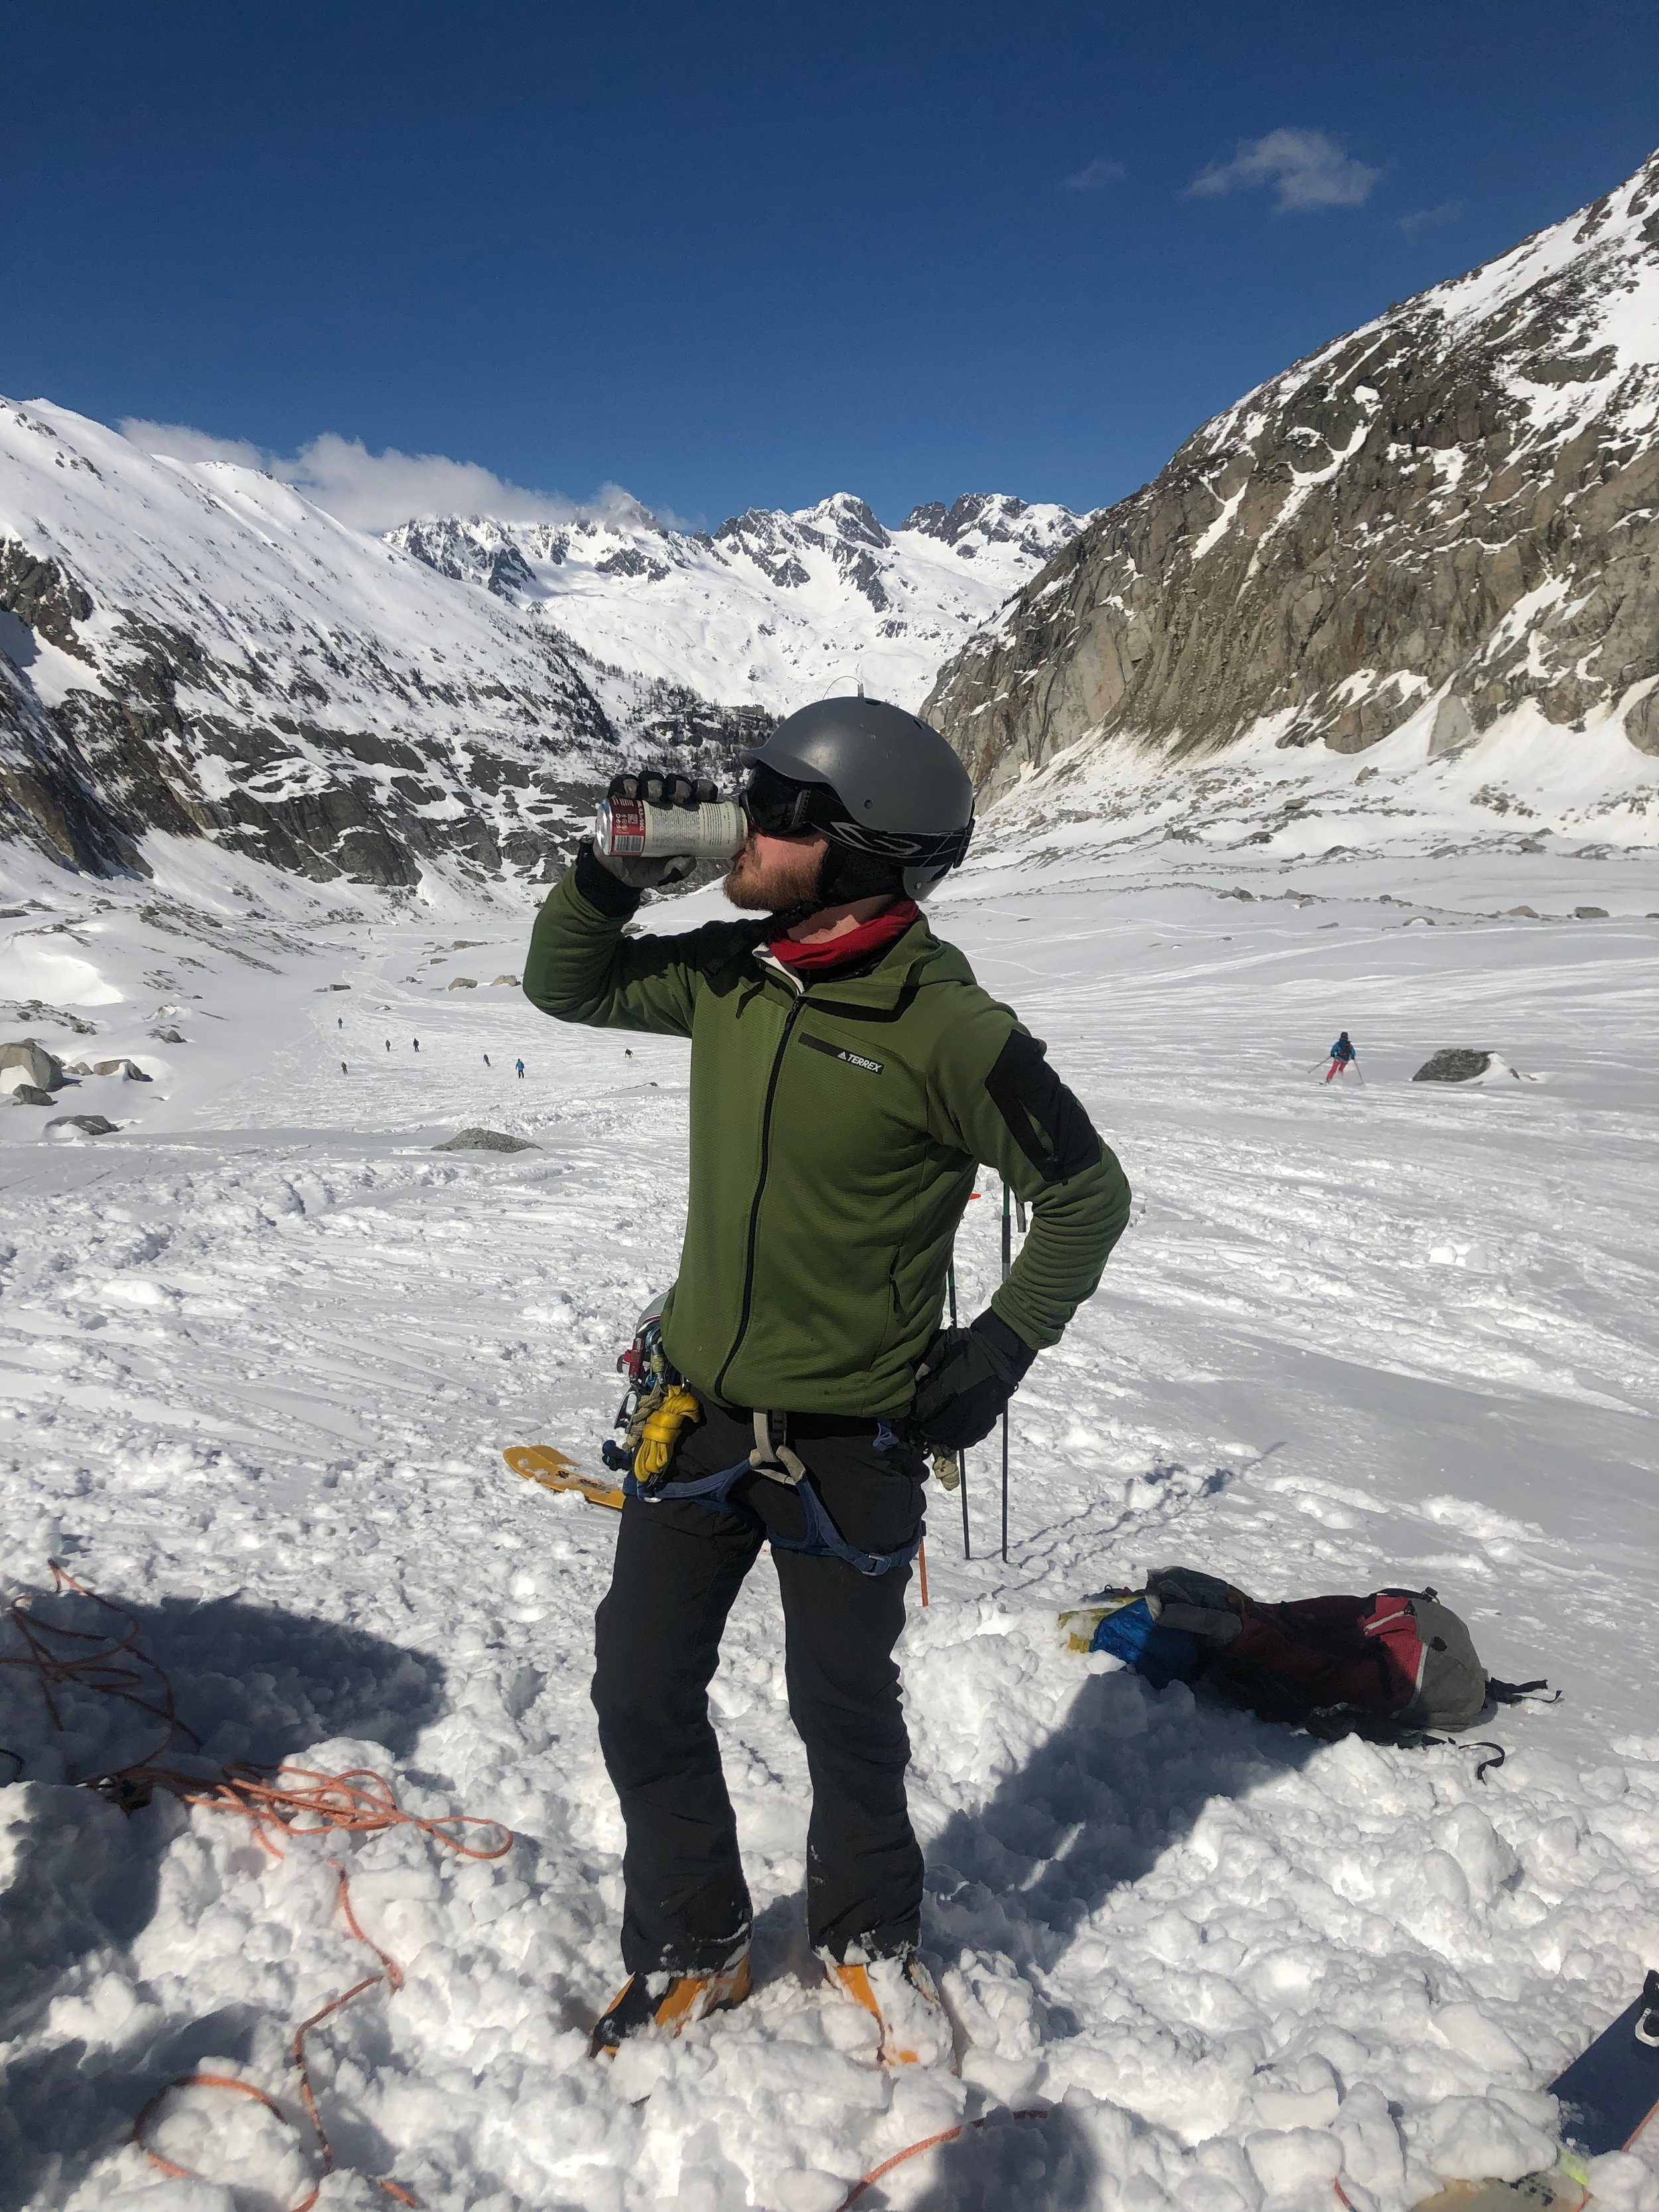 Vallee Blanche Beers, the perfect warmup to crevasse rescue practice